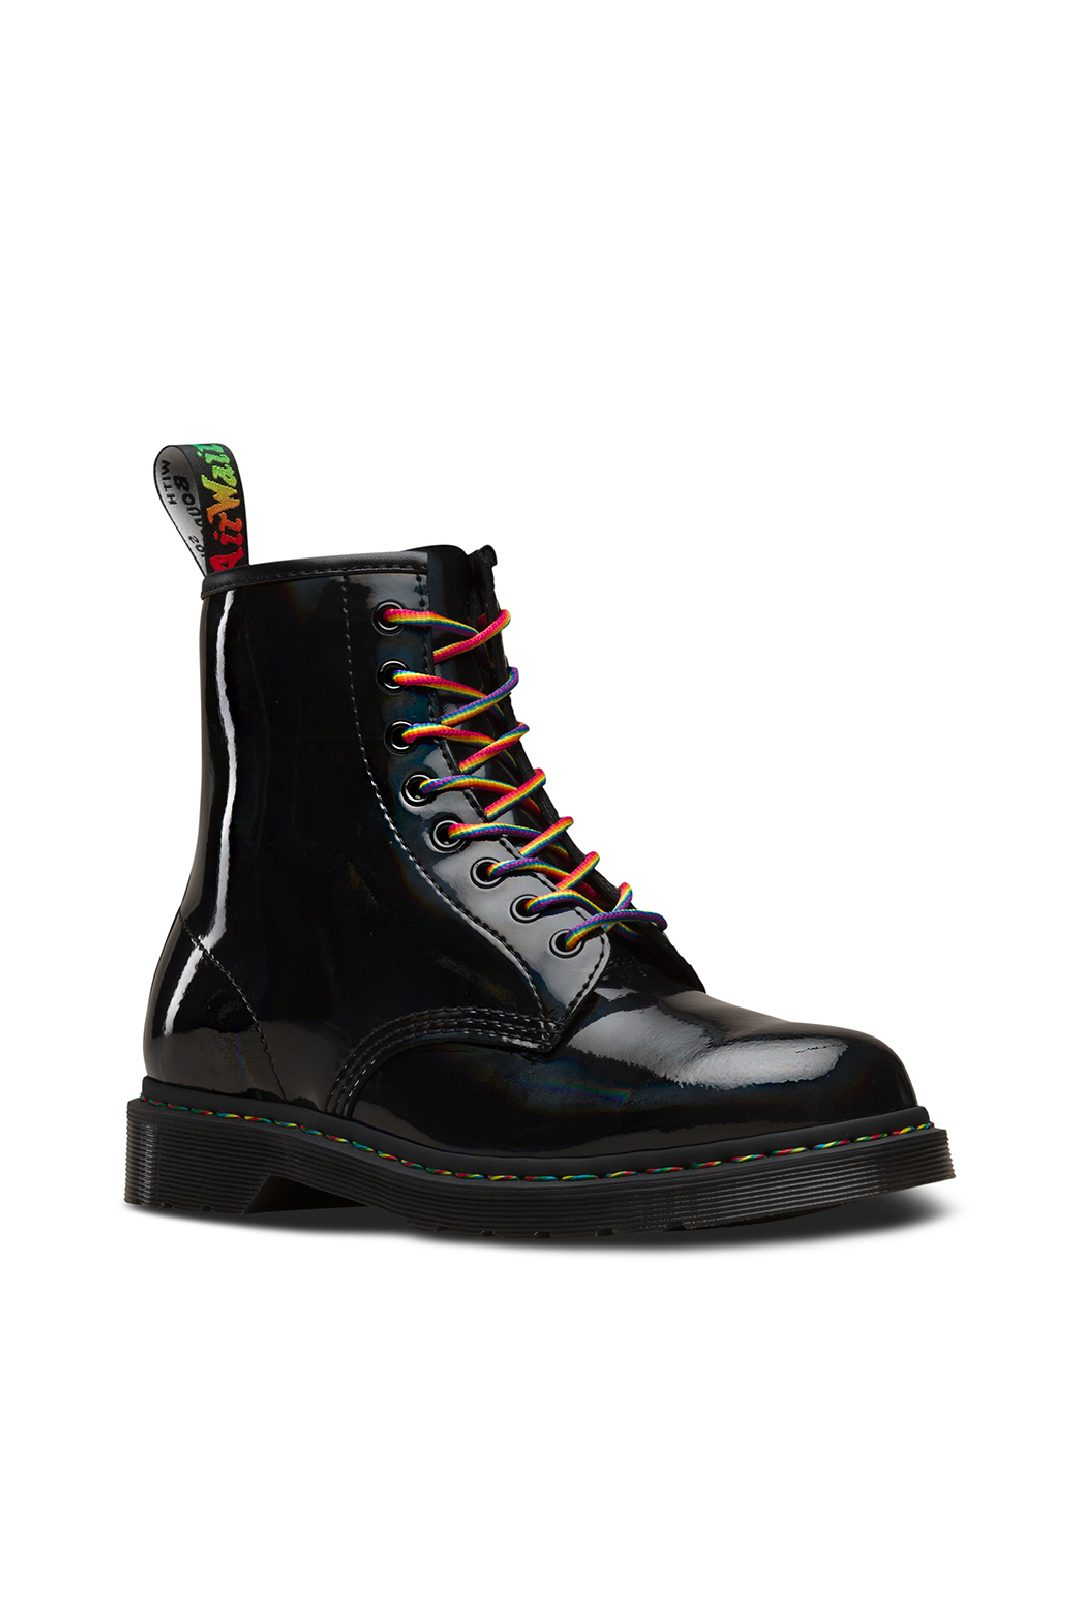 1460 Rainbow Patent Black